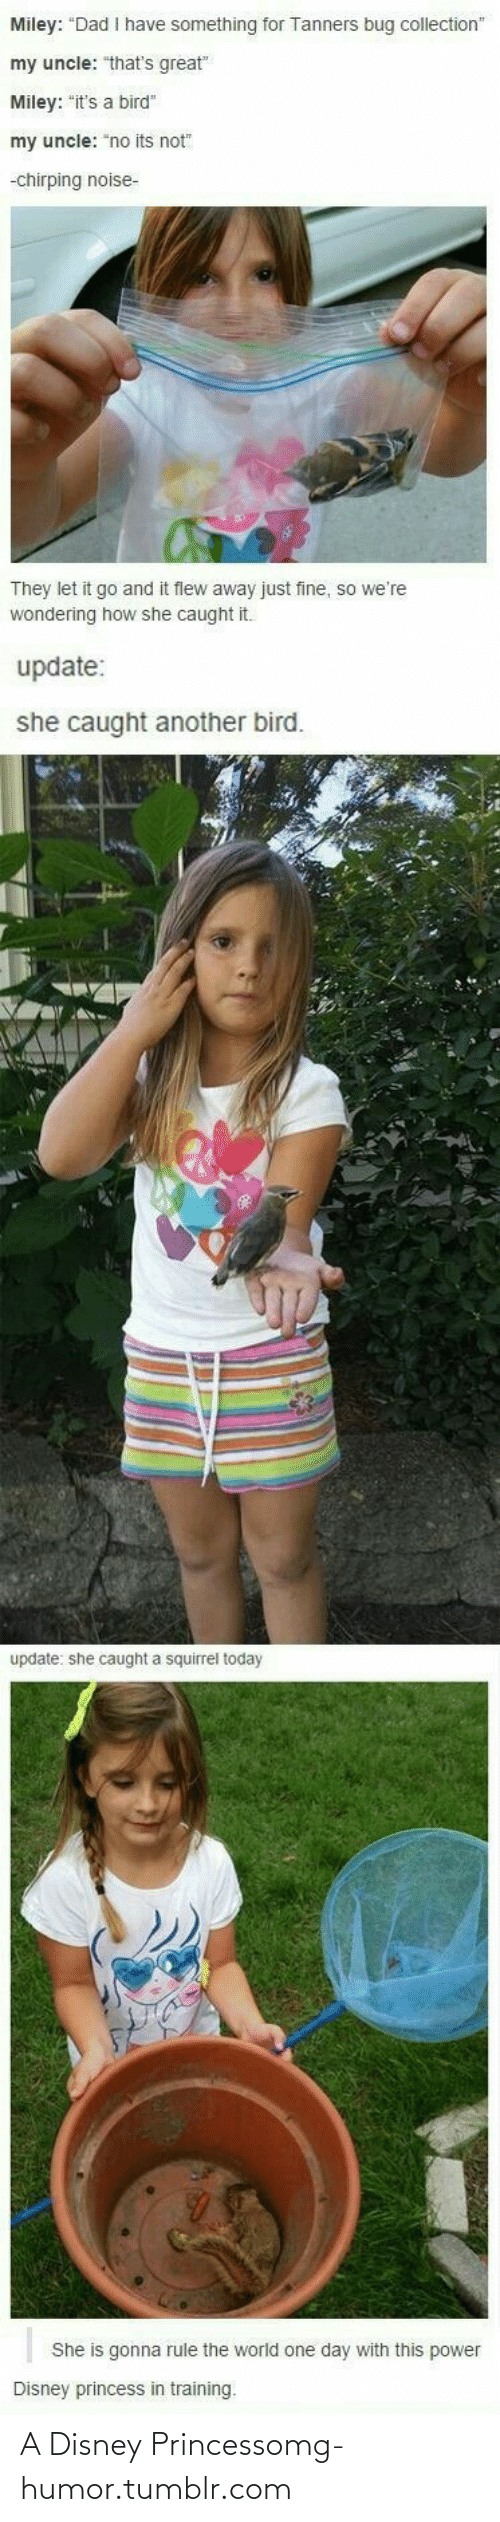 """Chirping: Miley: """"Dad I have something for Tanners bug collection""""  my uncle: """"that's great""""  Miley: """"it's a bird""""  my uncle: """"no its not""""  -chirping noise-  They let it go and it flew away just fine, so we're  wondering how she caught it.  update:  she caught another bird.  update: she caught a squirrel today  She is gonna rule the world one day with this power  Disney princess in training. A Disney Princessomg-humor.tumblr.com"""